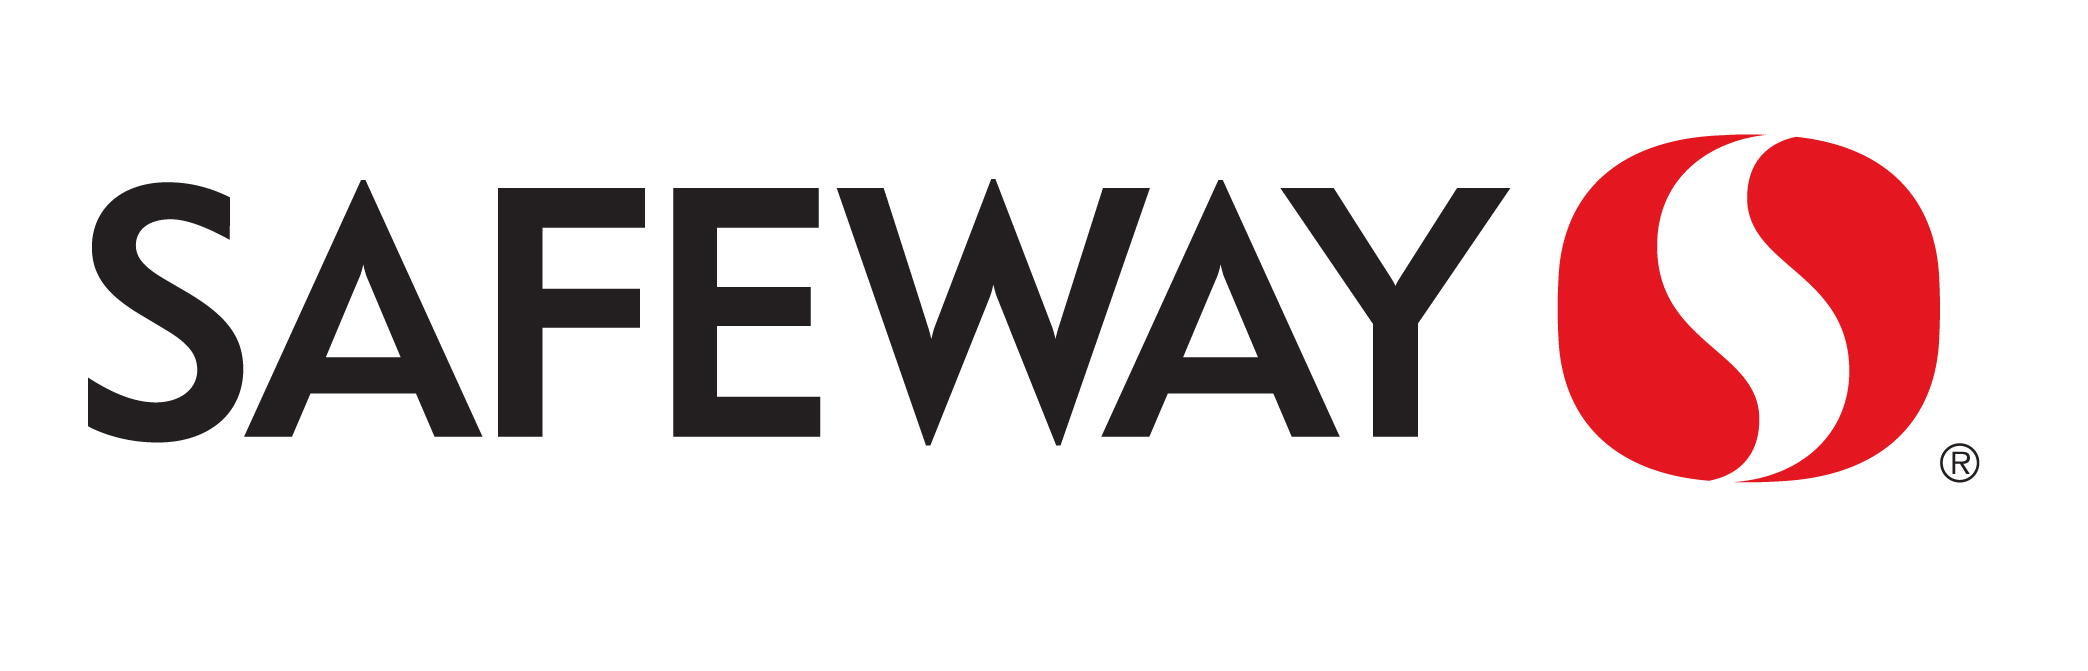 Safeway distribution center jobs - Distribution Center Jobs